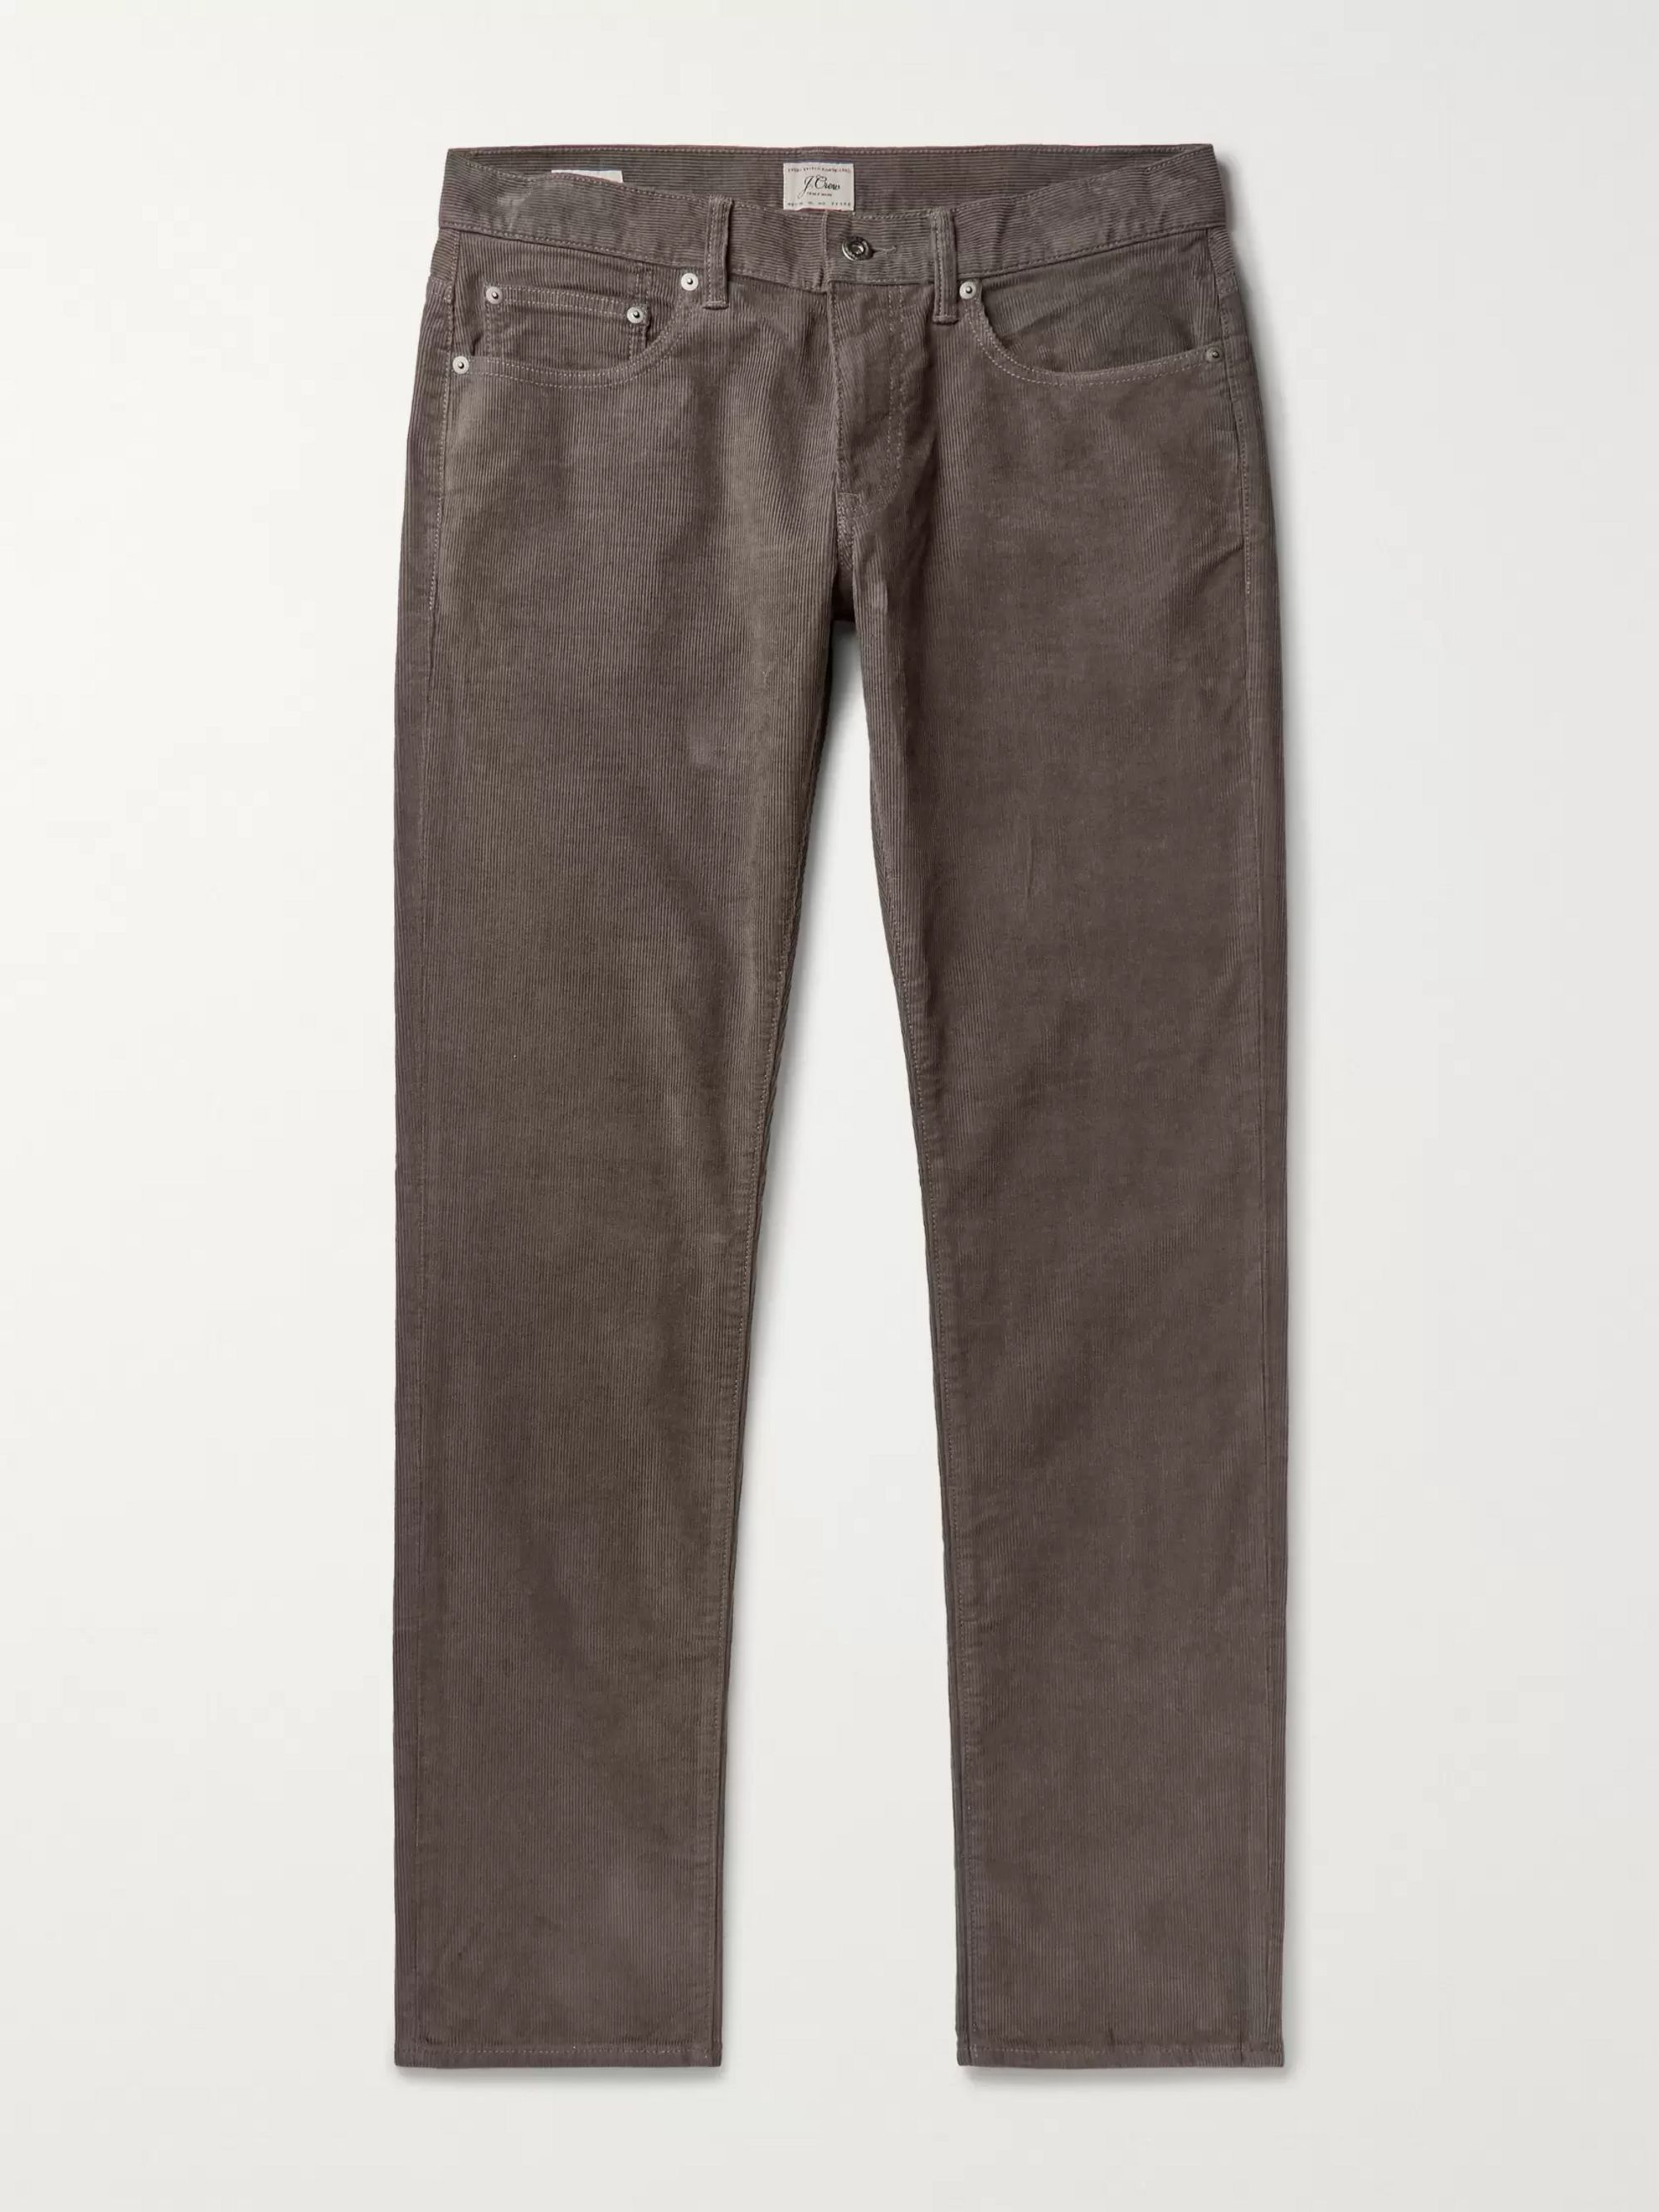 J.Crew 484 Slim-Fit Stretch-Cotton Corduroy Trousers